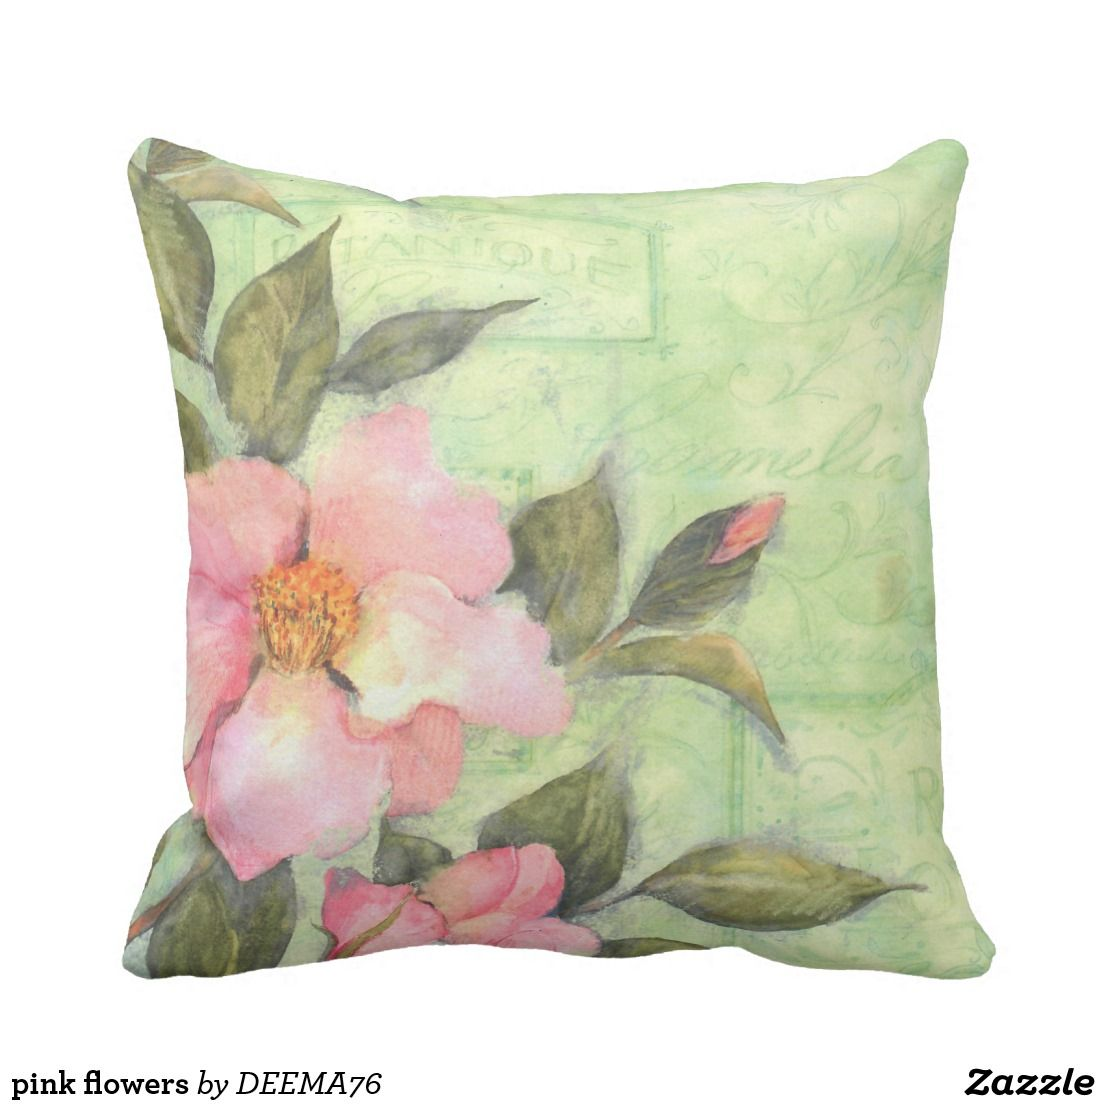 Create Your Own Throw Pillow Zazzle Com In 2020 Throw Pillows